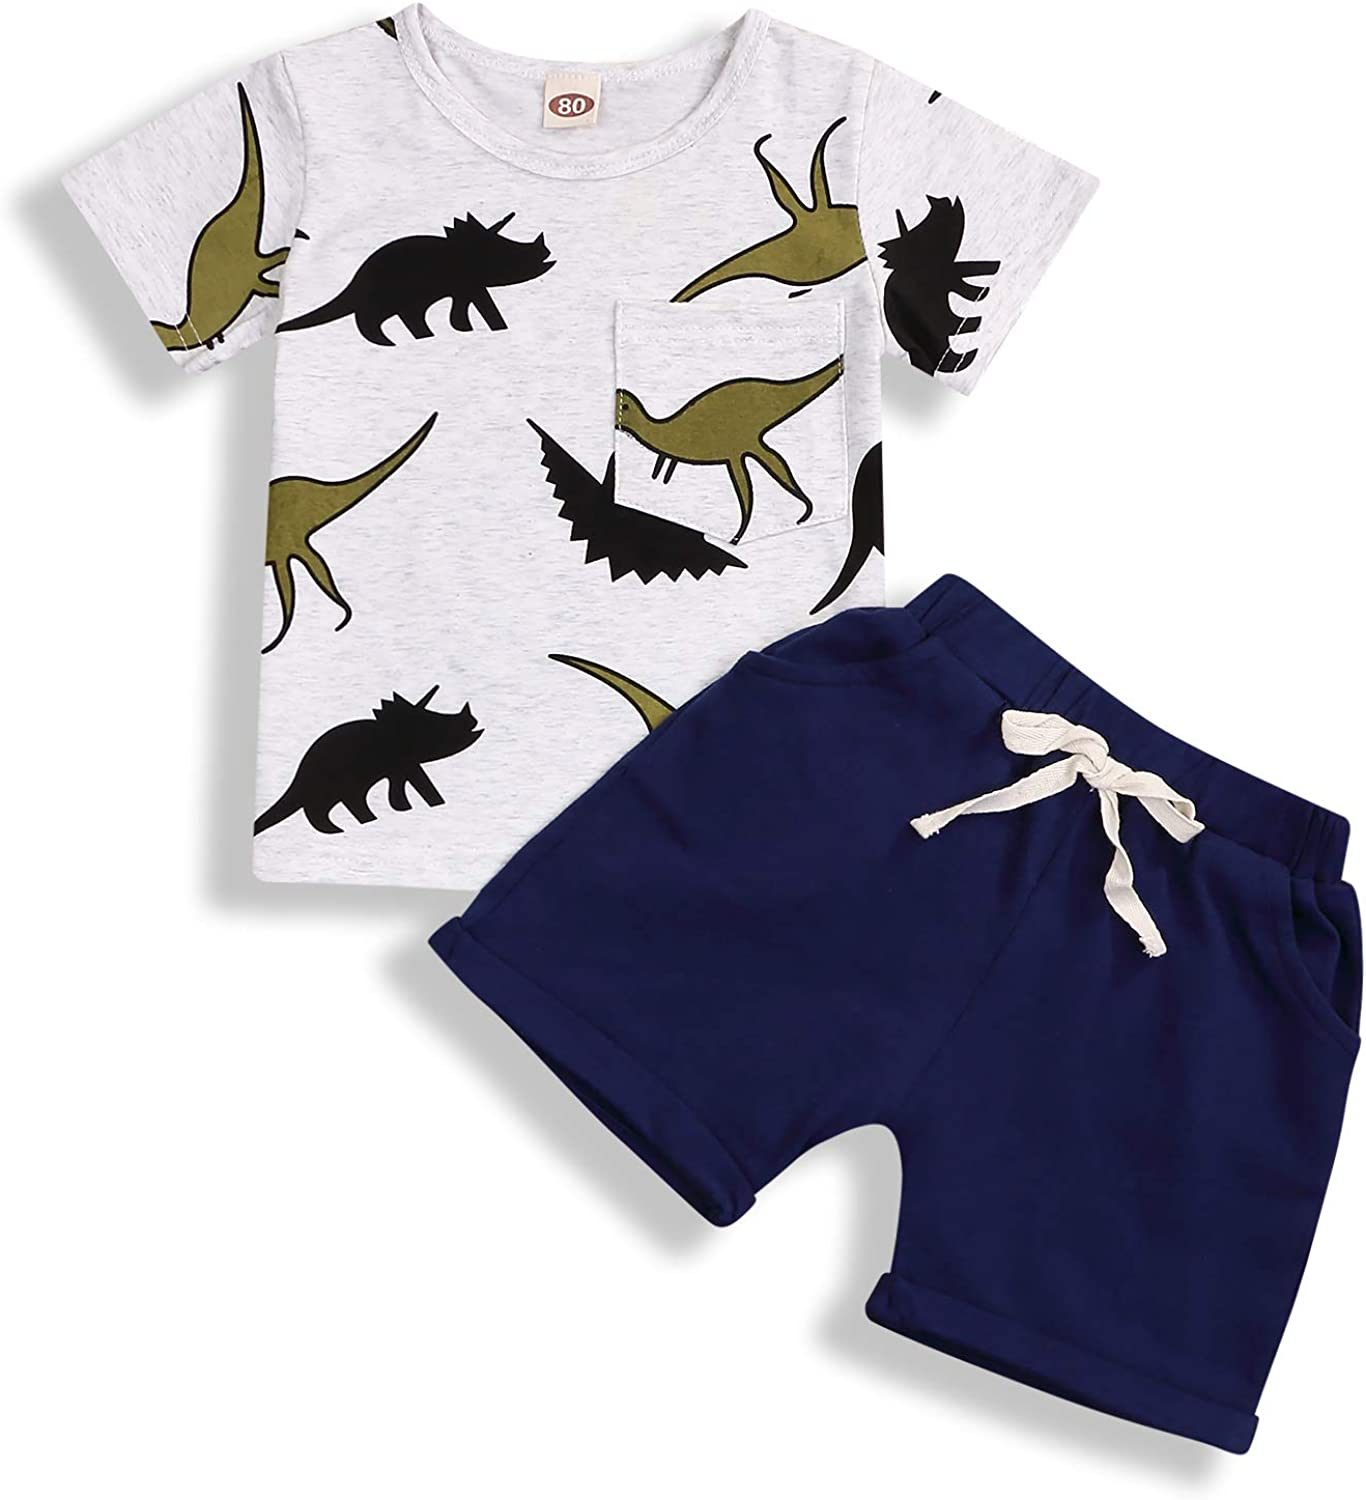 Toddler Baby Boy Summer Outfits Dinosaur Print Shirt Top Short Pants Cotton Clothes Sets